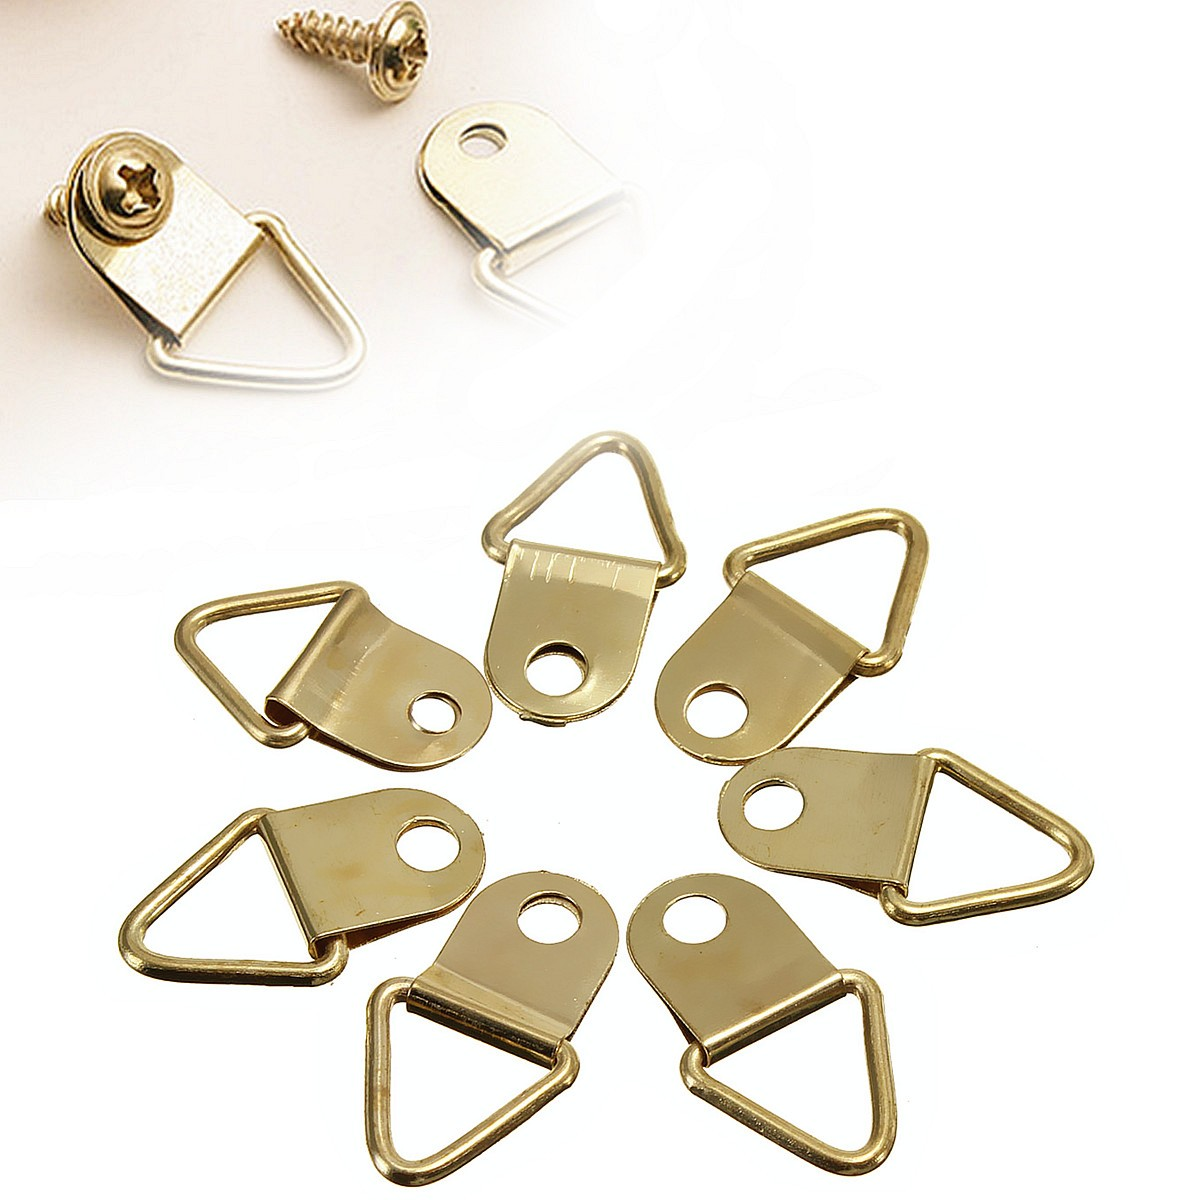 Picture Hangers 50pcs Picture Hangers Golden Brass Triangle Photo Picture